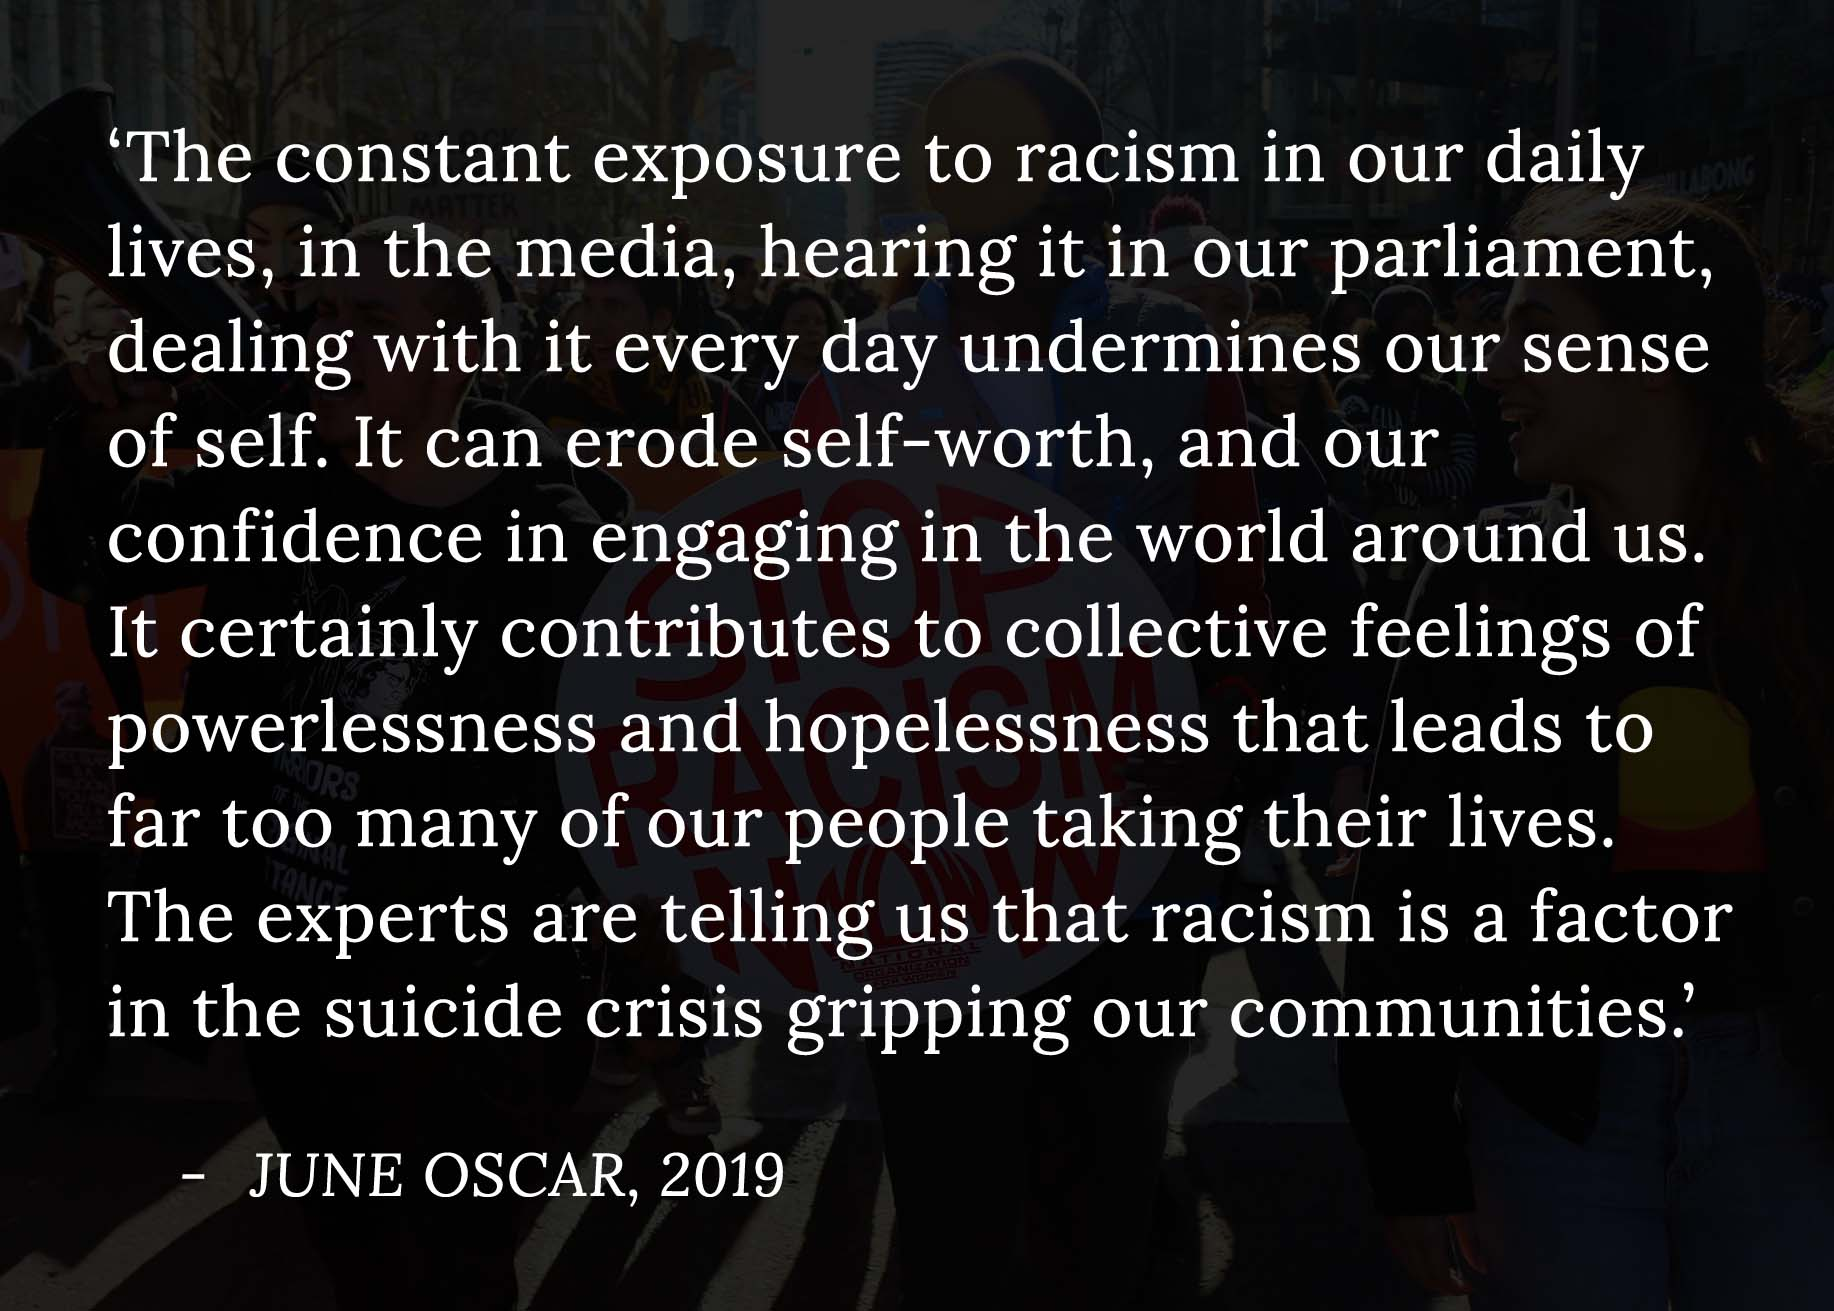 A quote from June Oscar overlayed on a photo from a Black Lives Matter protest. The quote reads, 'The constant exposure to racism in our daily lives, in the media, hearing it in our parliament, dealing with it every day undermines our sense of self. It can erode self-worth, and our confidence in engaging in the world around us. It certainly contributes to collective feelings of powerlessness and hopelessness that leads to far too many of our people taking their lives. The experts are telling us that racism is a factor in the suicide crisis gripping our communities.'